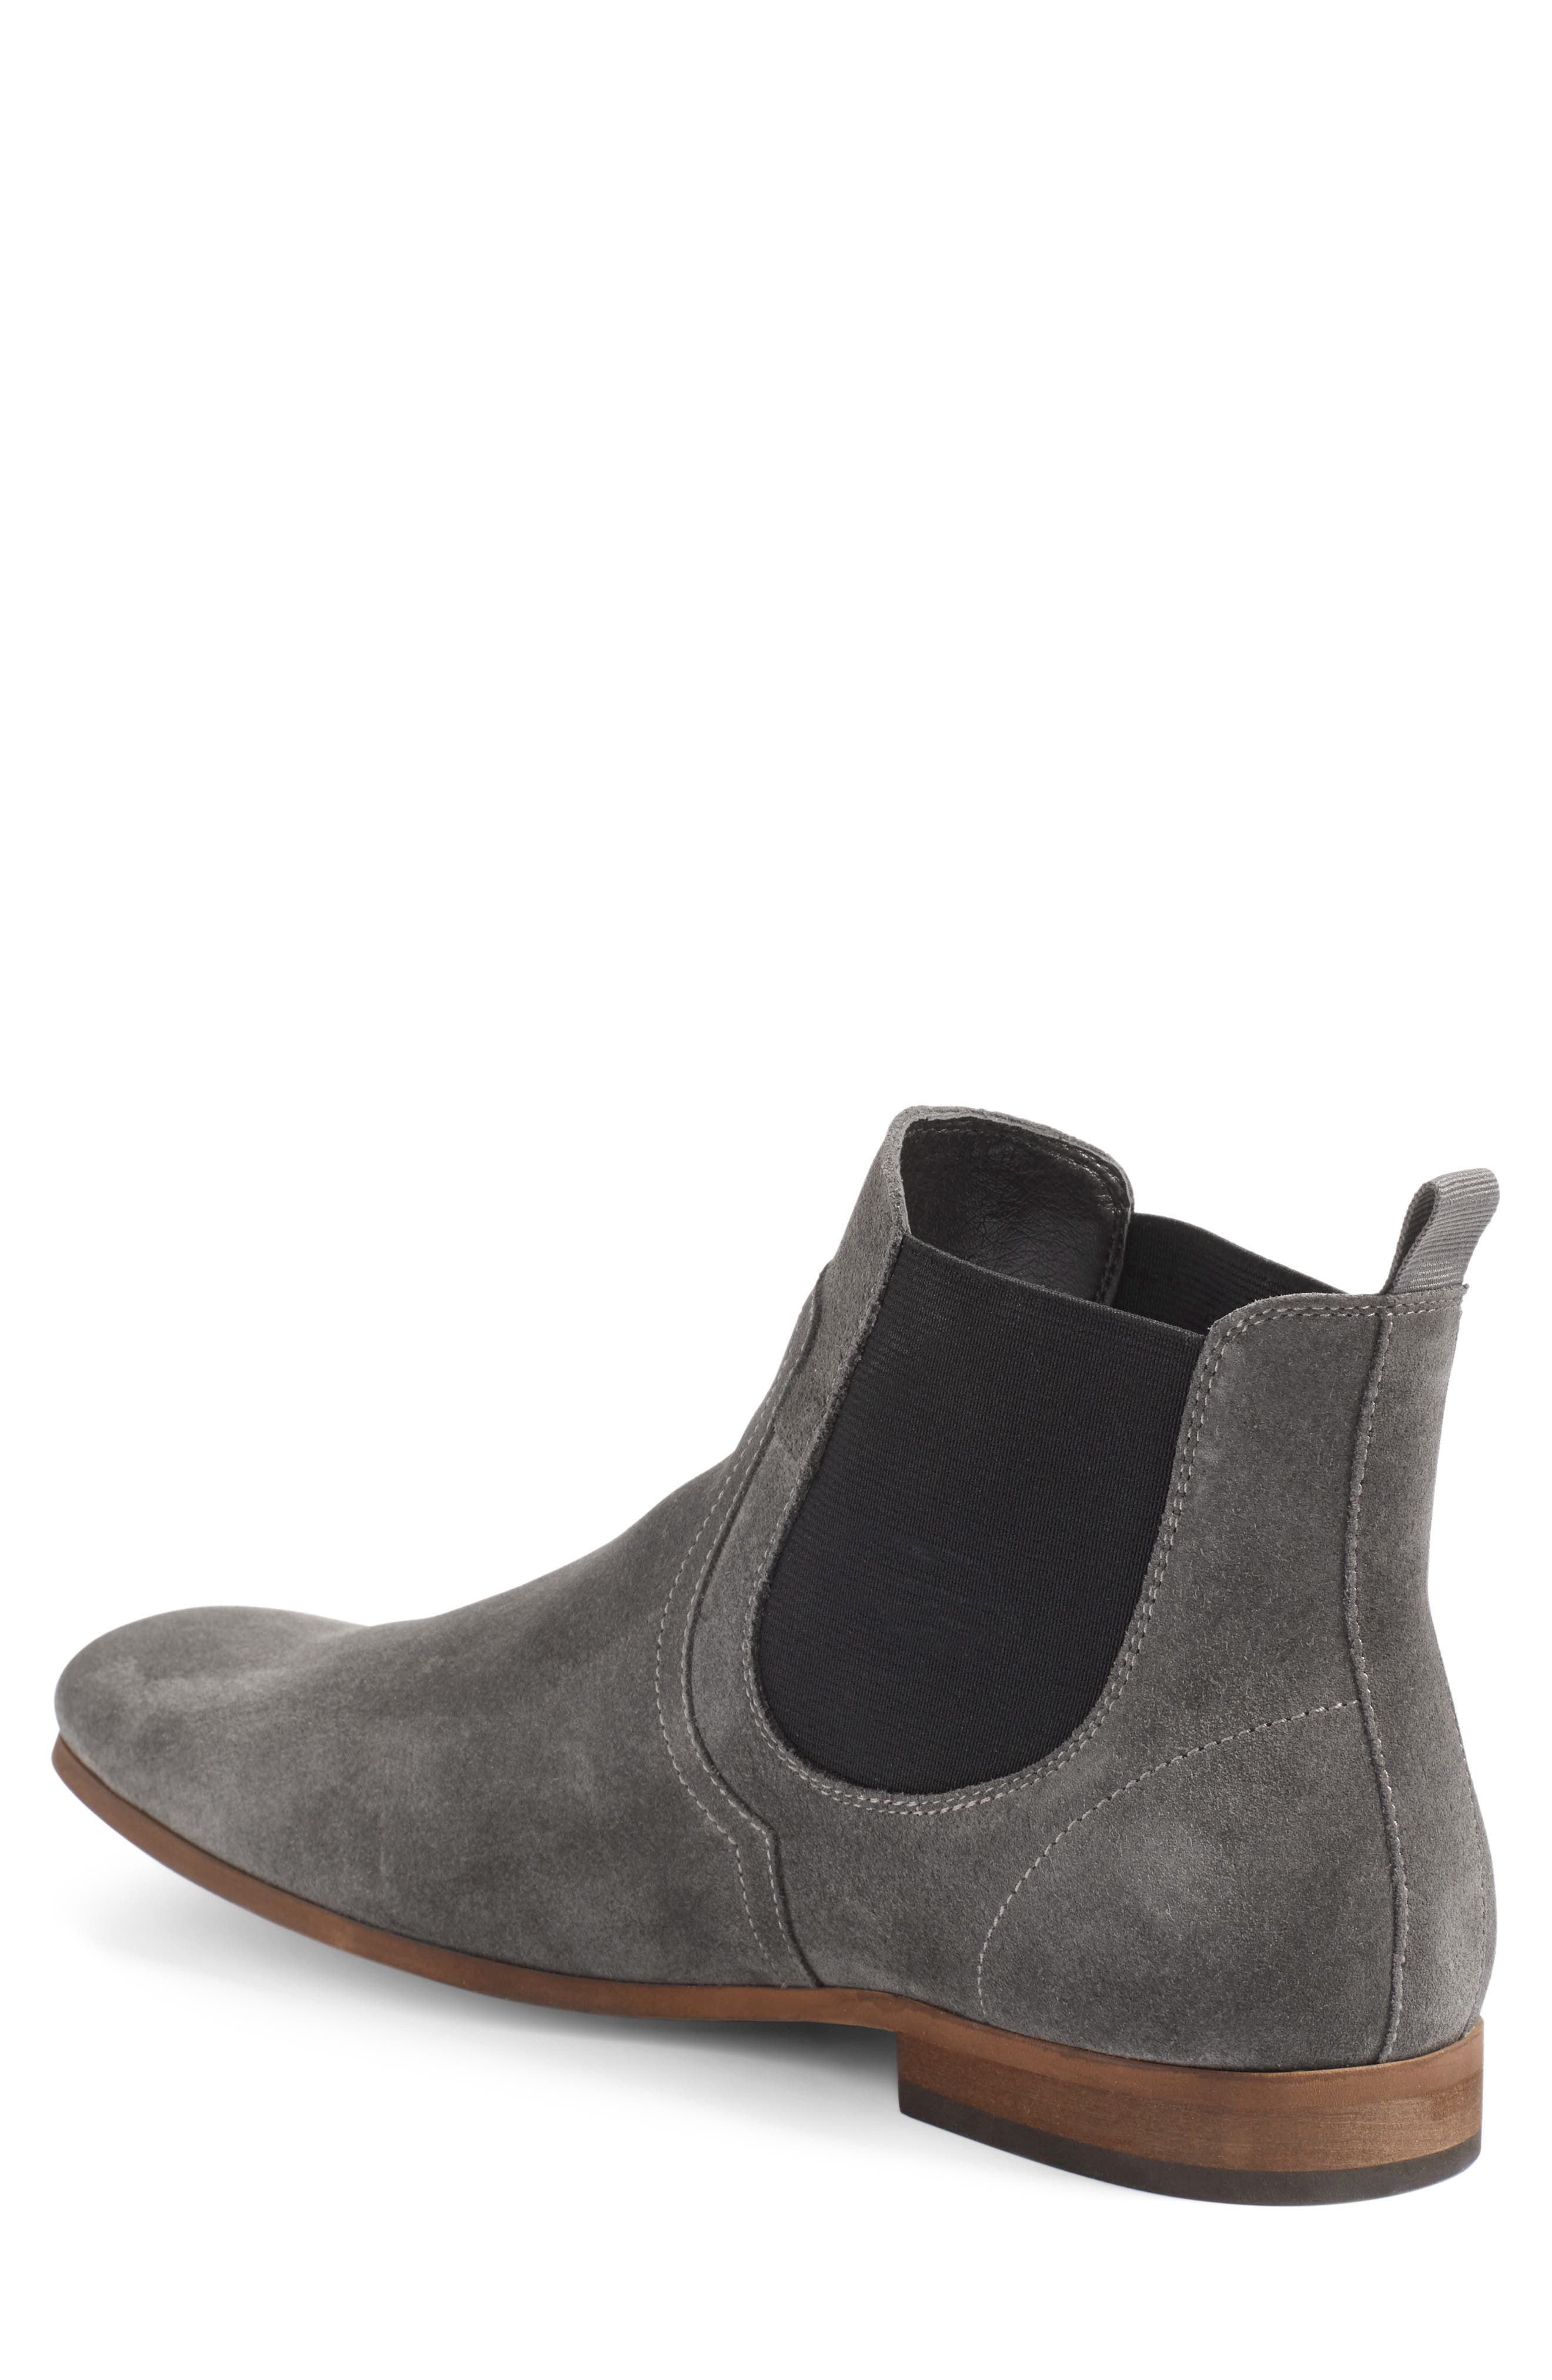 Brysen Chelsea Boot,                             Alternate thumbnail 25, color,